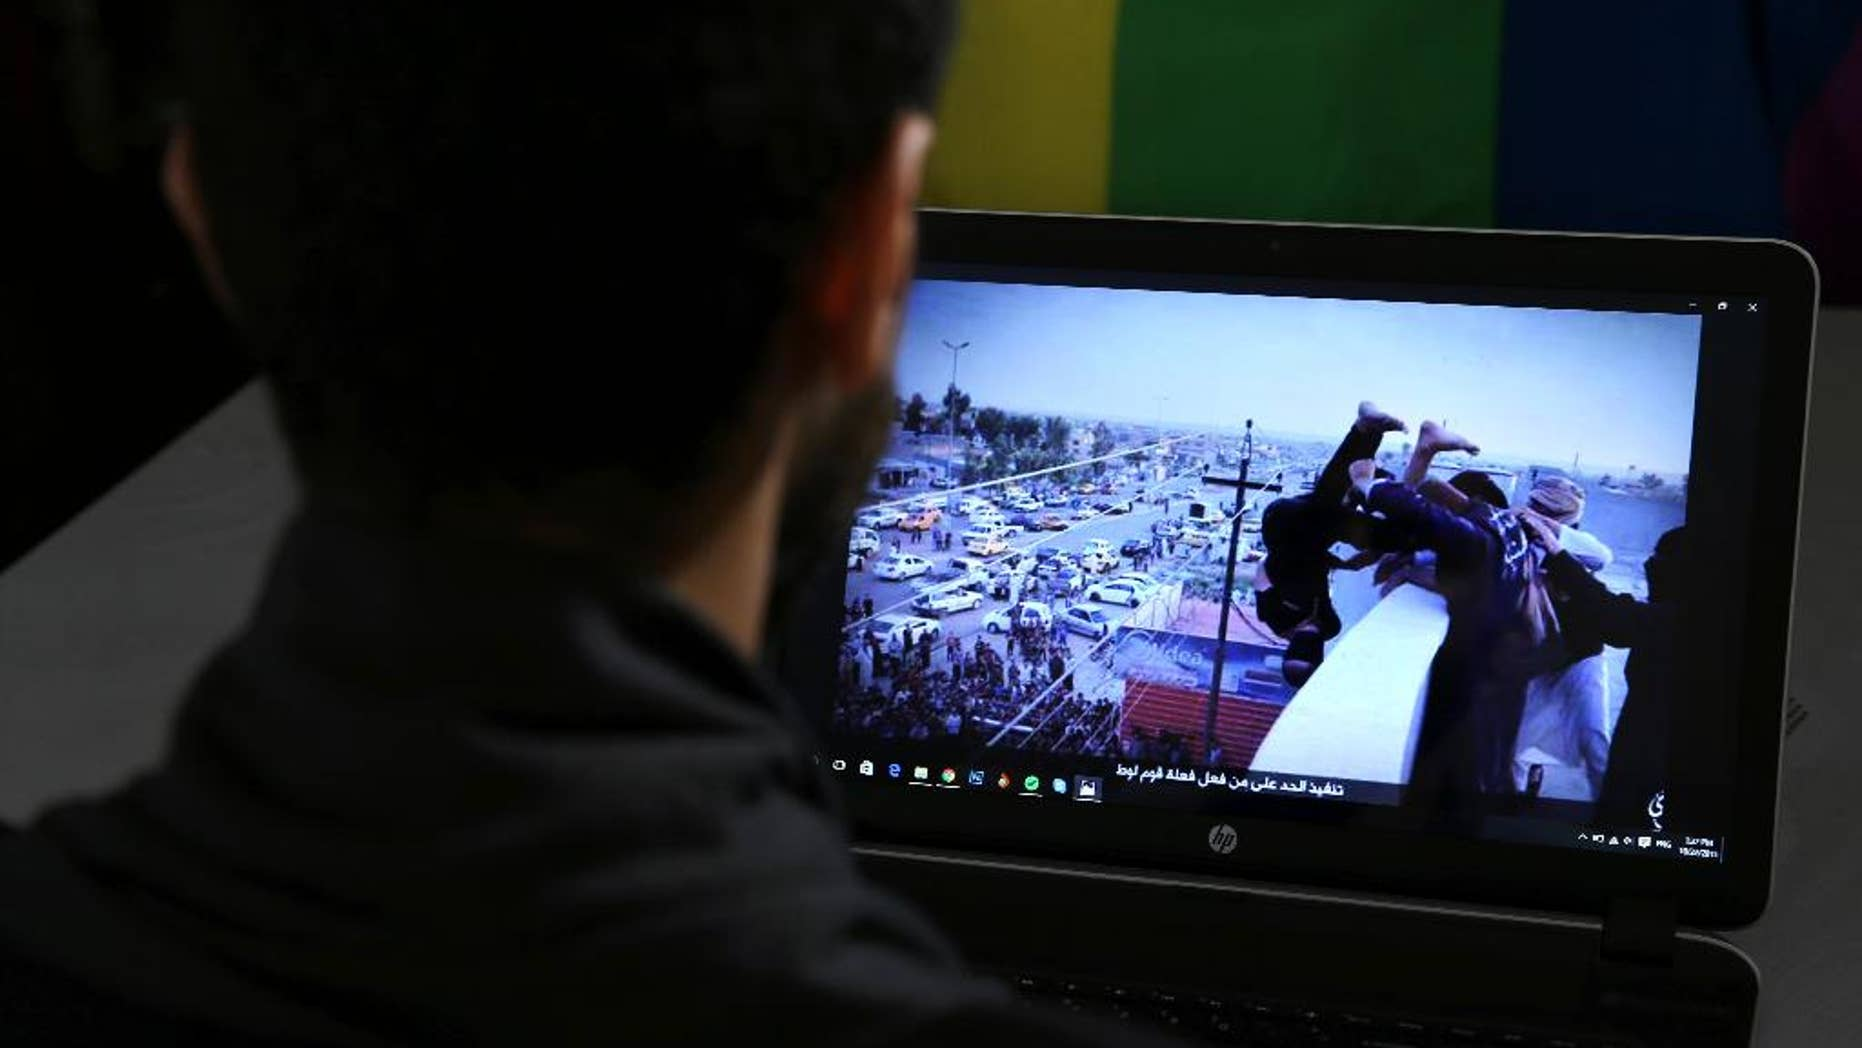 Daniel Halaby, a gay Syrian living in southern Turkey, shows a photo from his laptop of ISIS militants throwing a man off a roof allegedly for violating the extremists' ban on homosexuality.